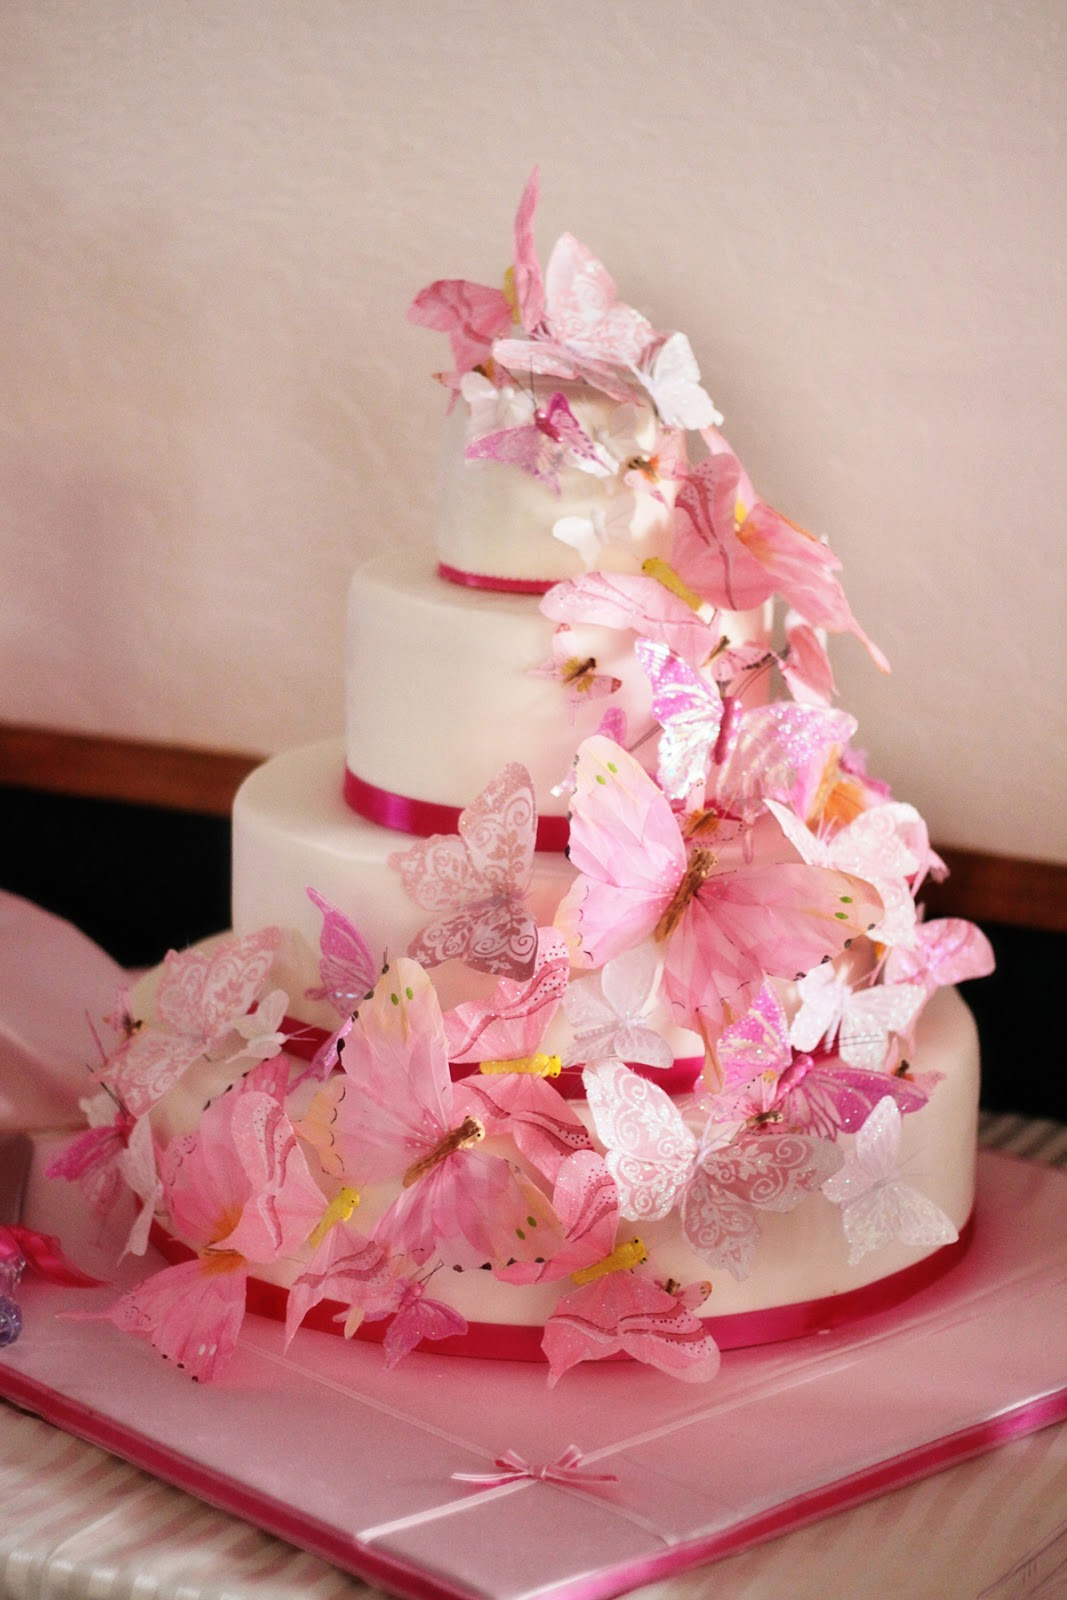 Cake Decoration Butterfly : Wedding Cakes Pictures: Butterfly Wedding Cake Decorations ...